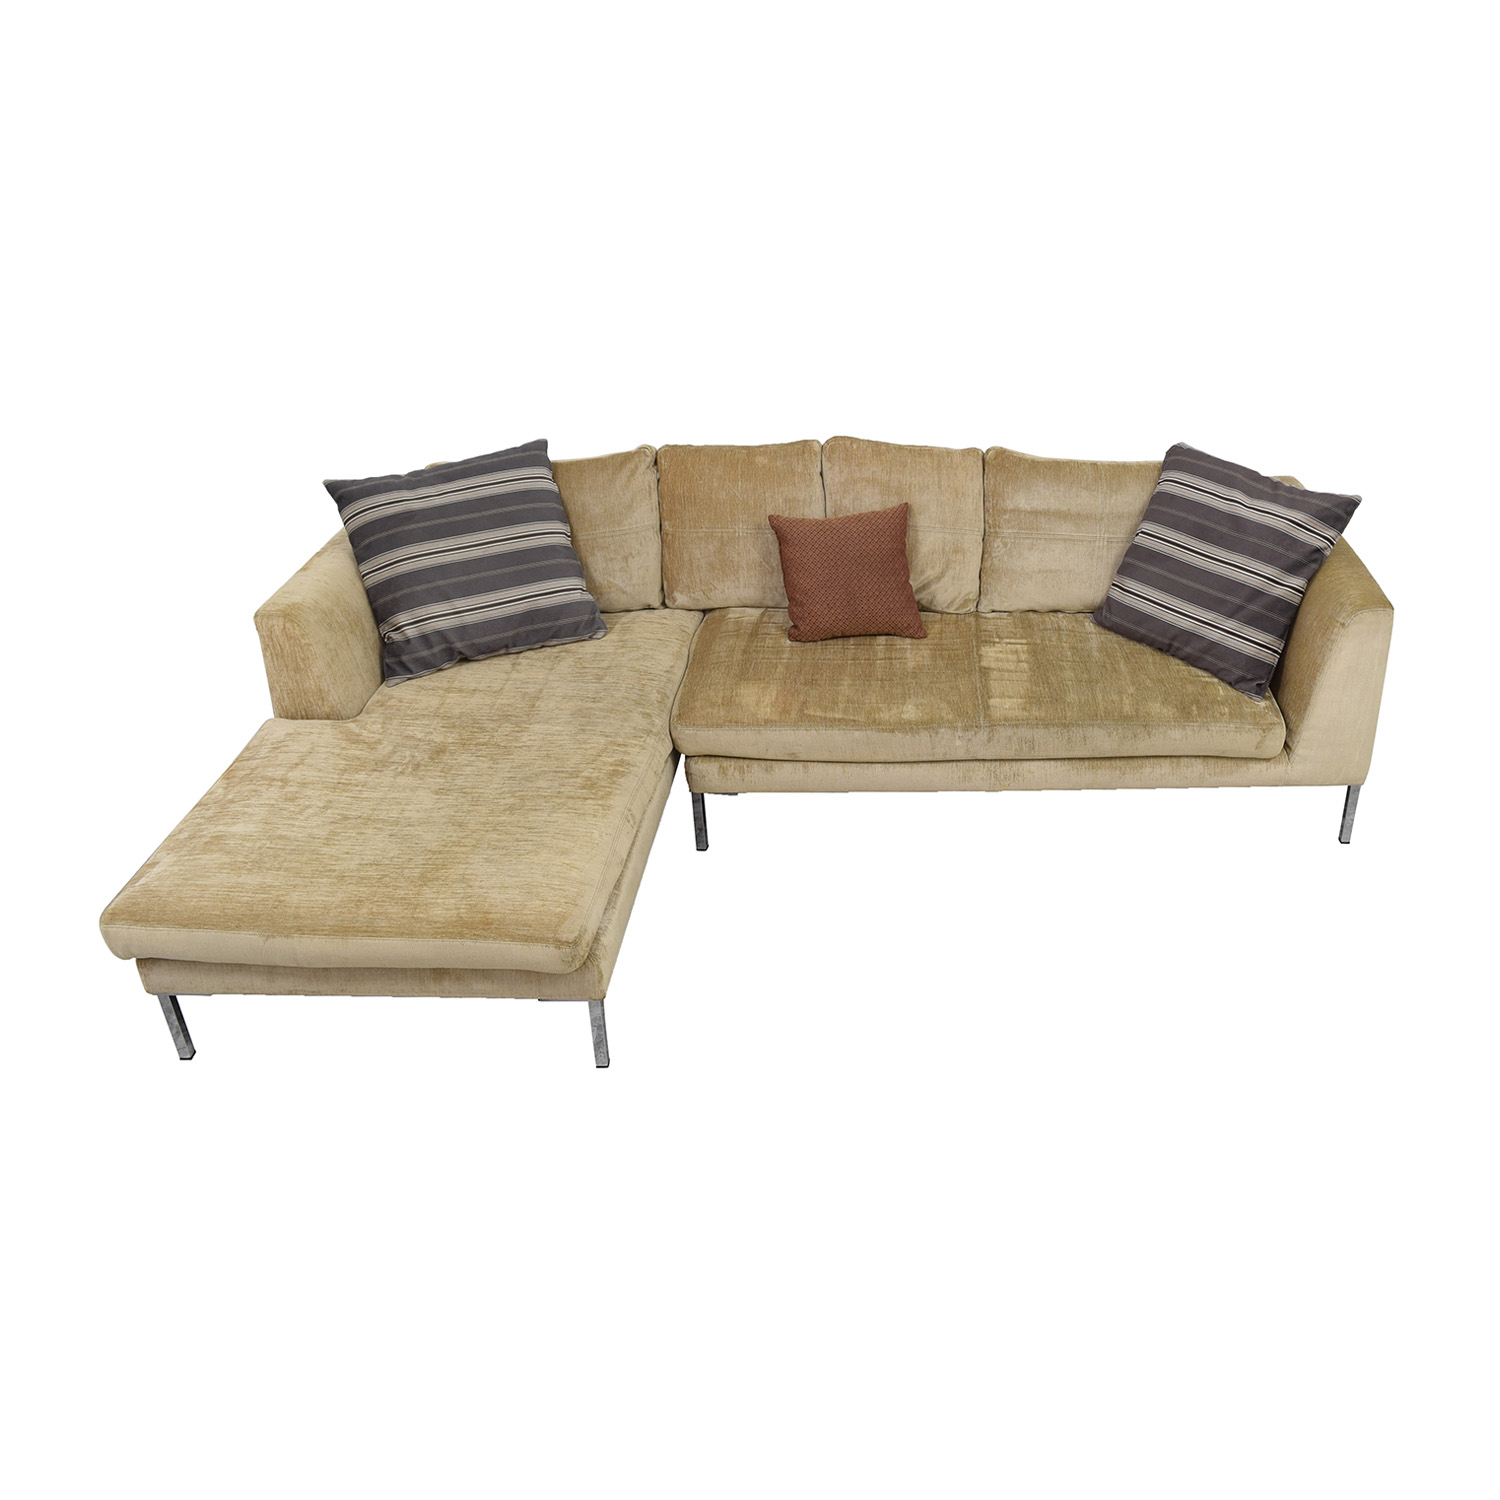 36% OFF Bernhardt Bernhardt Grey Sectional Sofas